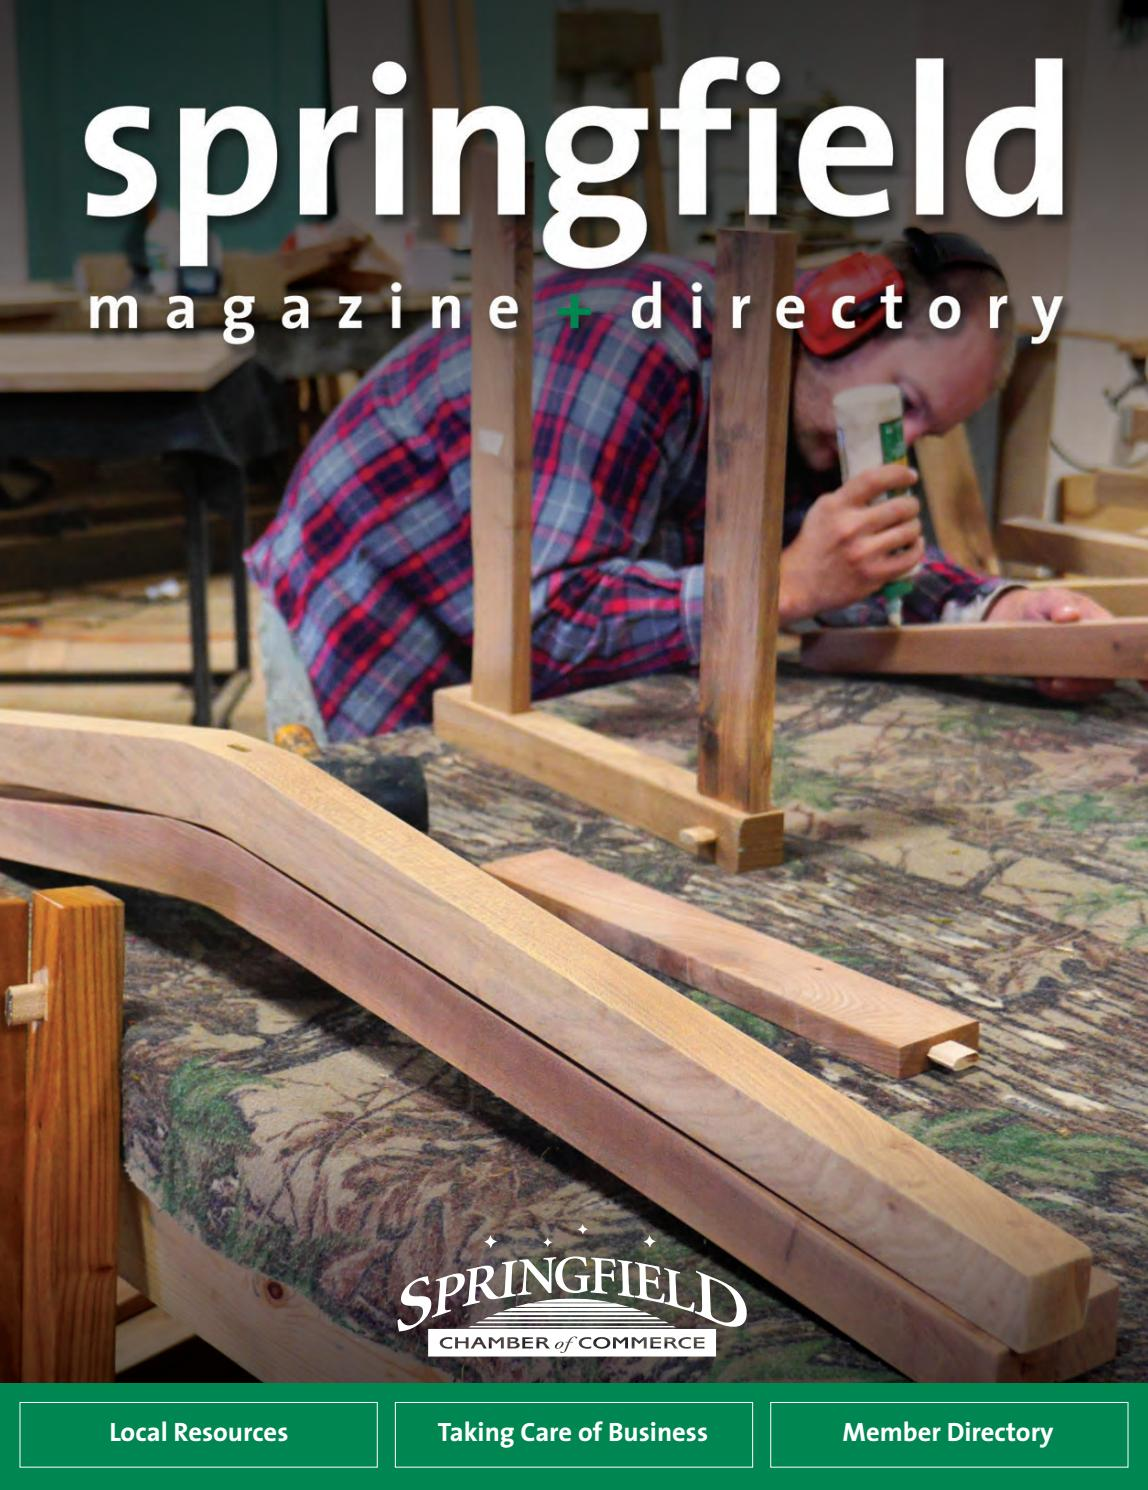 Contact greg valerie for more information 832 687 7616 greg valerie - 2016 Springfield Magazine Directory By Springfield Area Chamber Of Commerce Issuu